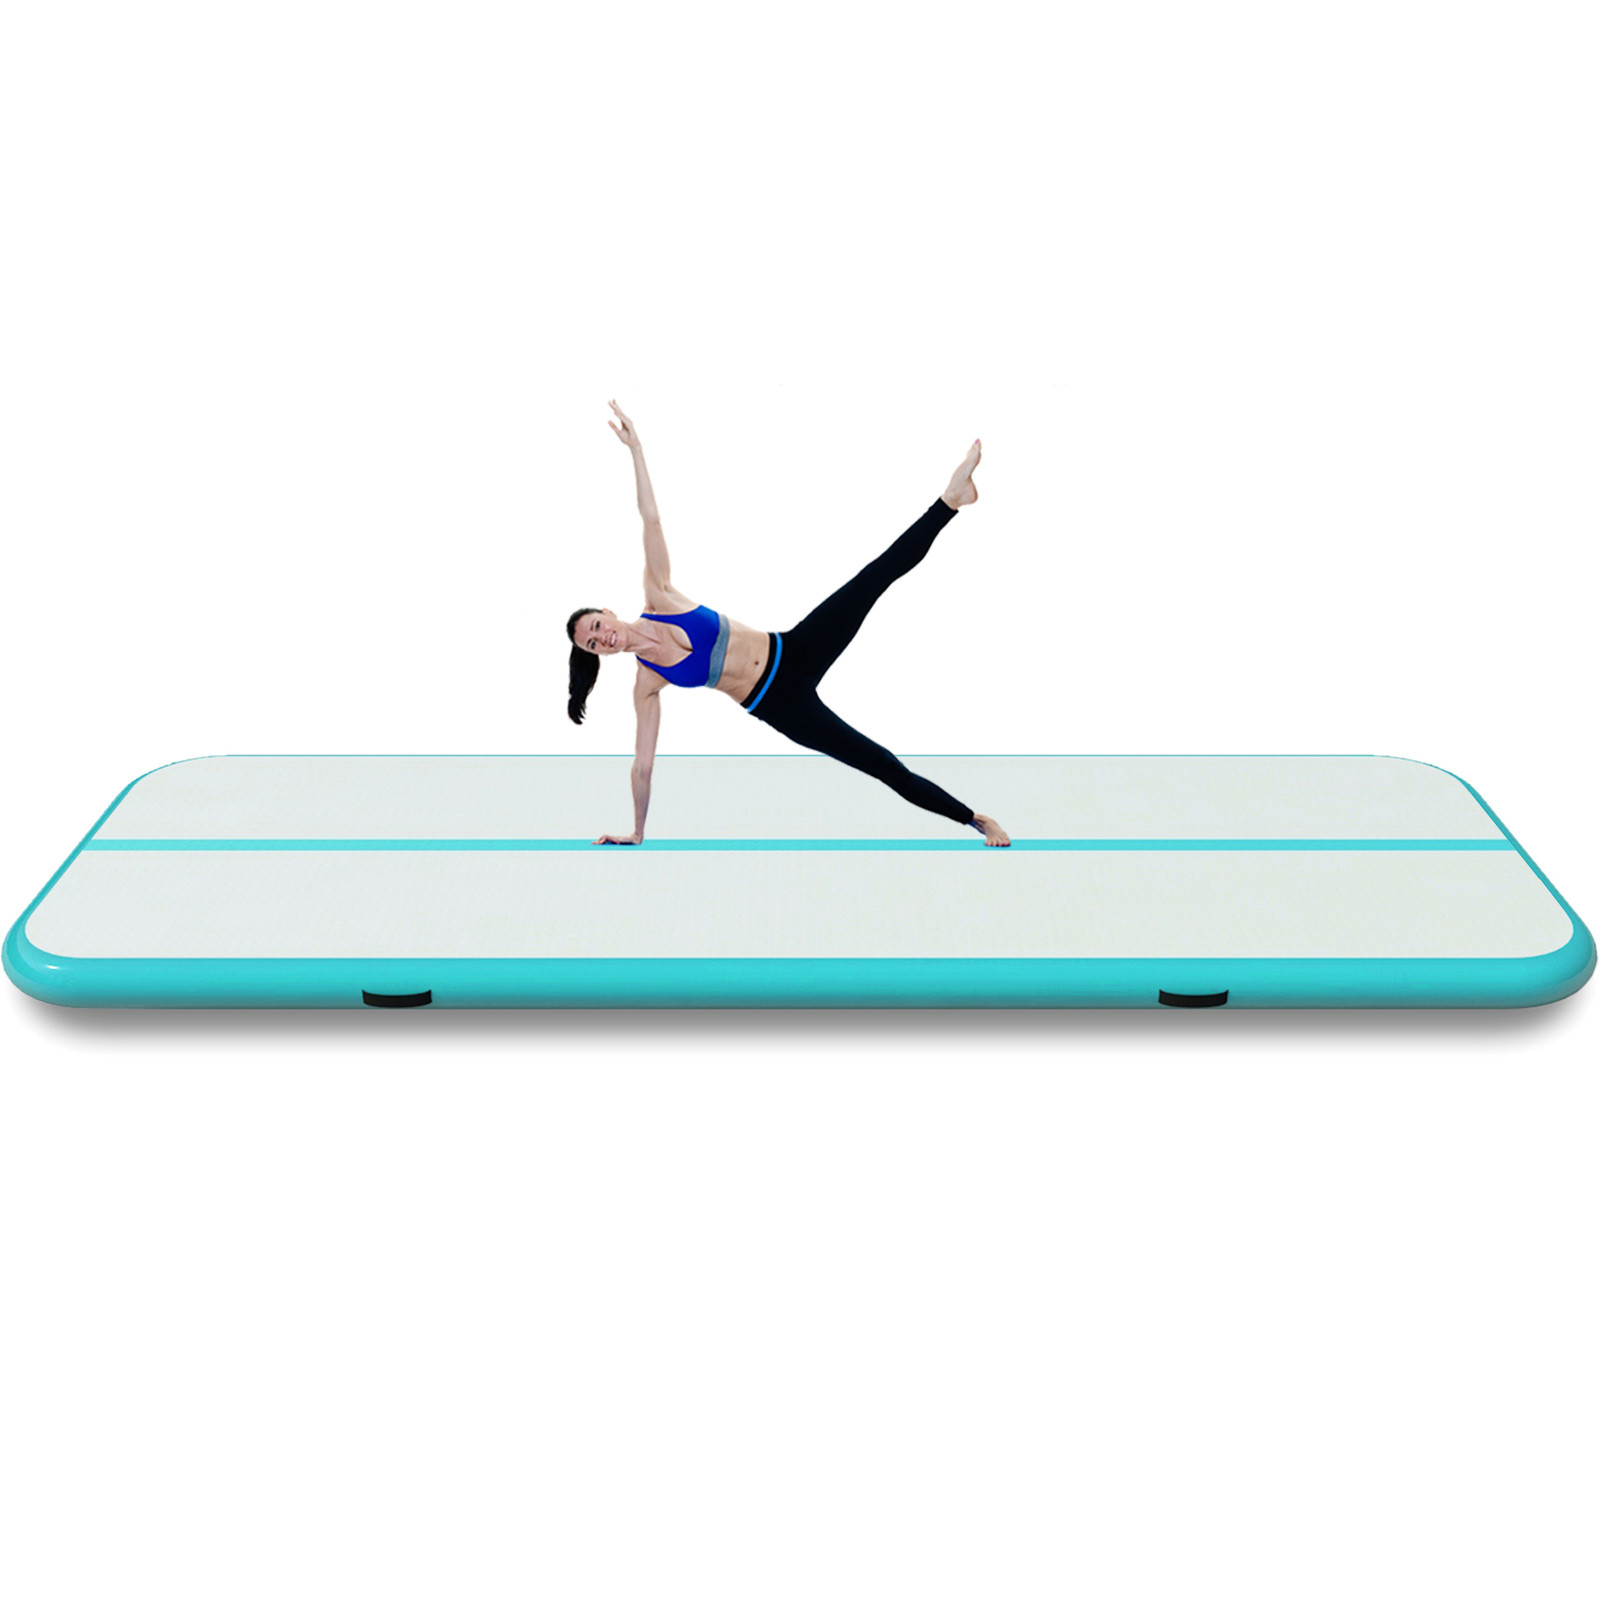 4-12M-Tapis-de-Gymnastique-Gonflable-Yoga-Fitness-Tapis-de-Tumbling-Airtrack miniature 34